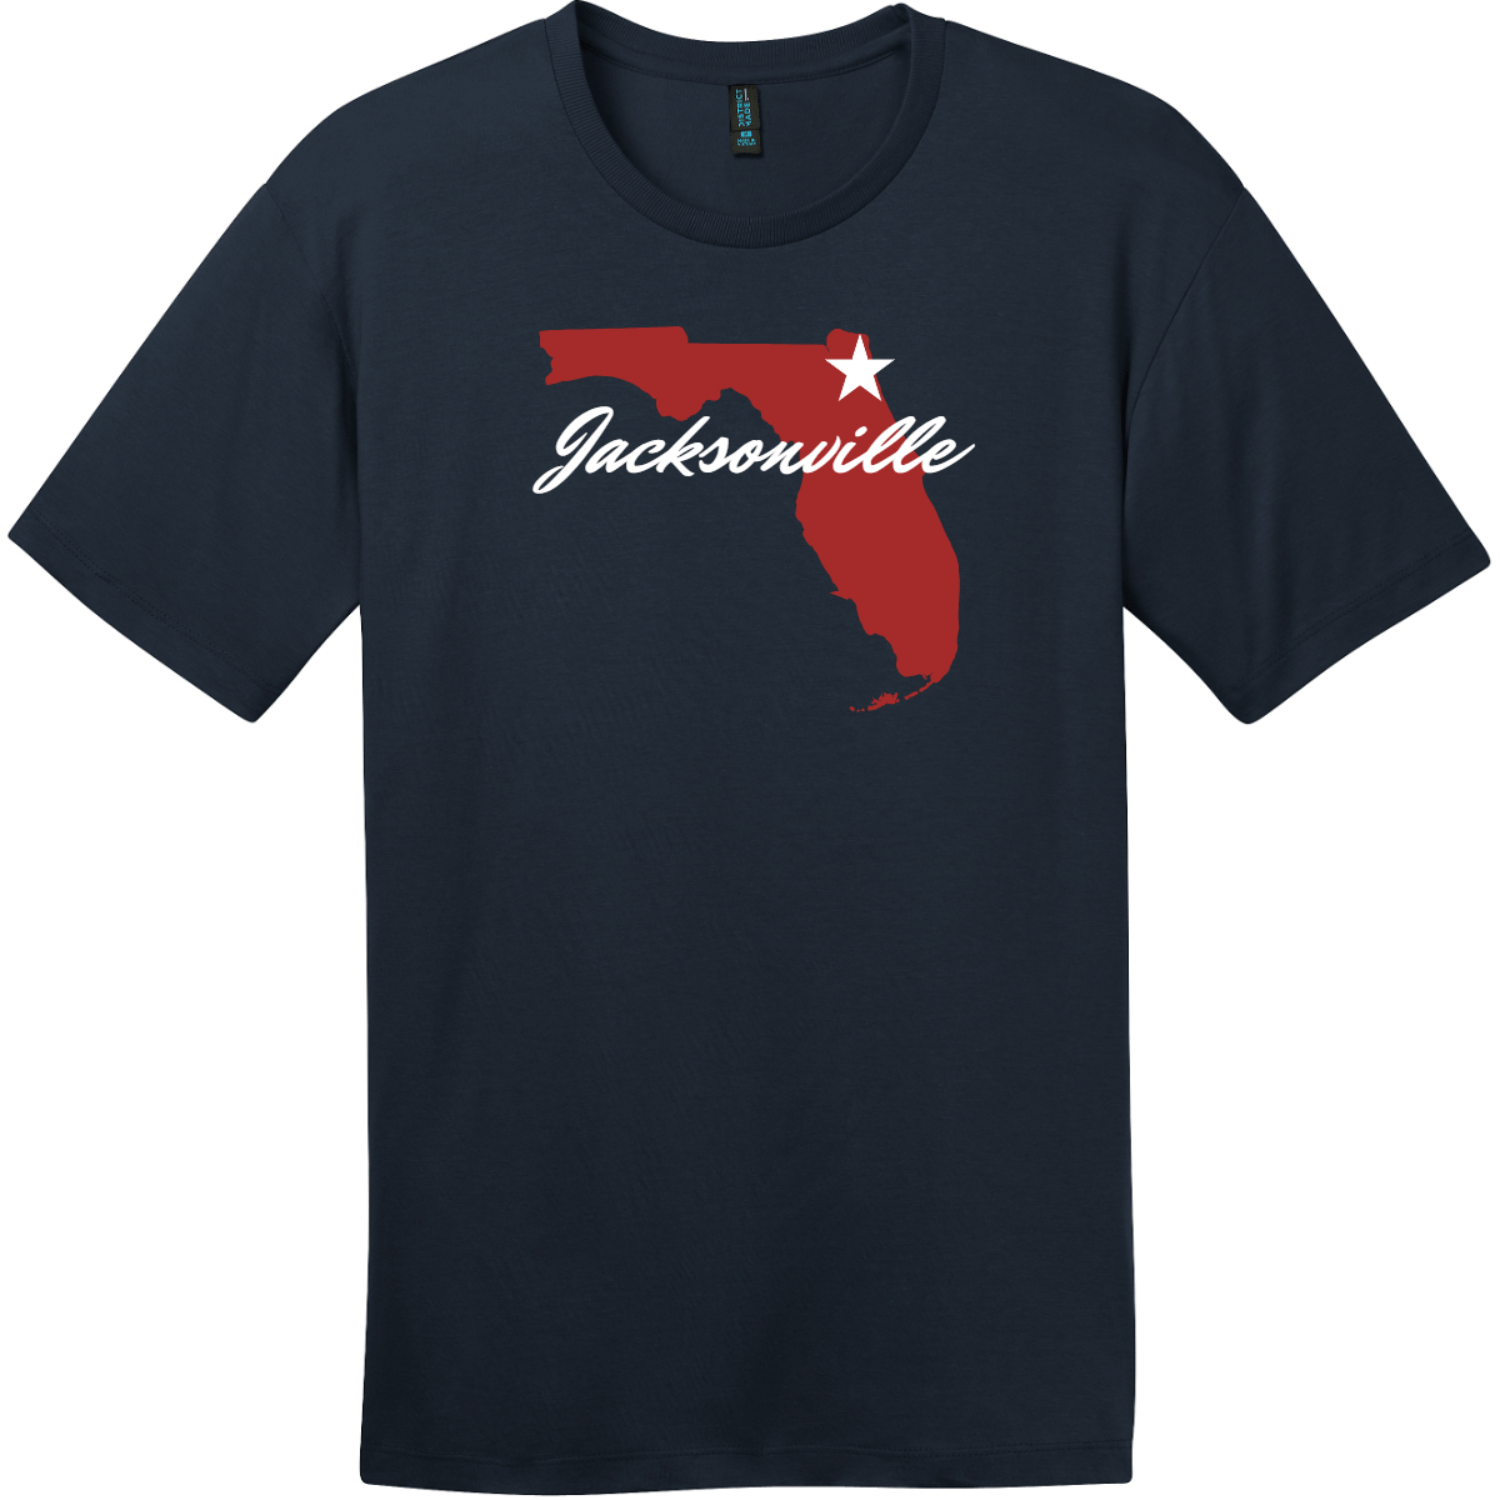 Jacksonville Florida State T-Shirt New Navy District Perfect Weight Tee DT104